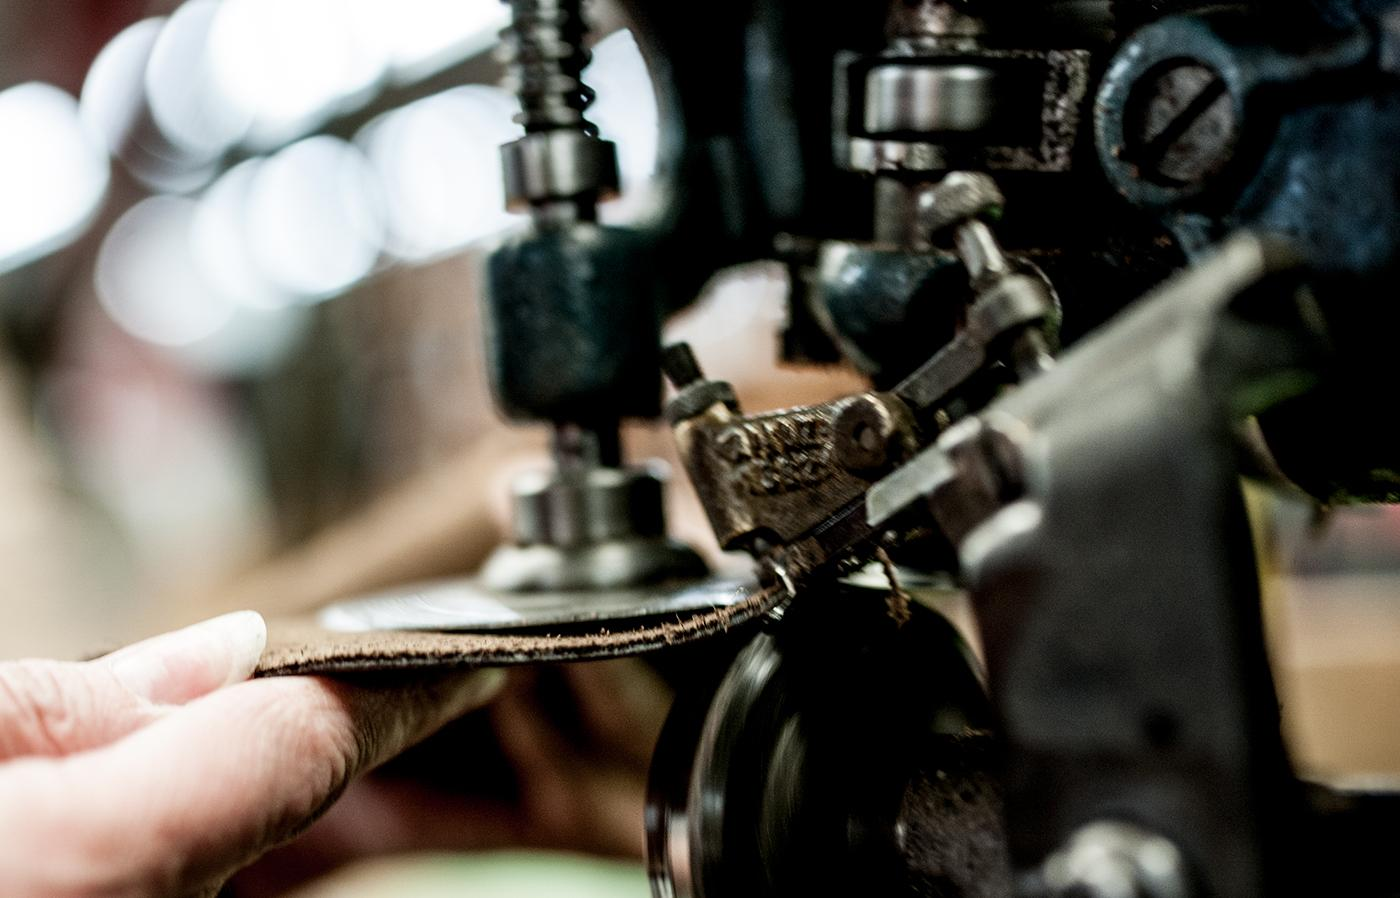 Horween leather is hand-cut by Rancourt & Co.'s artisans to ensure that only the best sections make it to the final product.